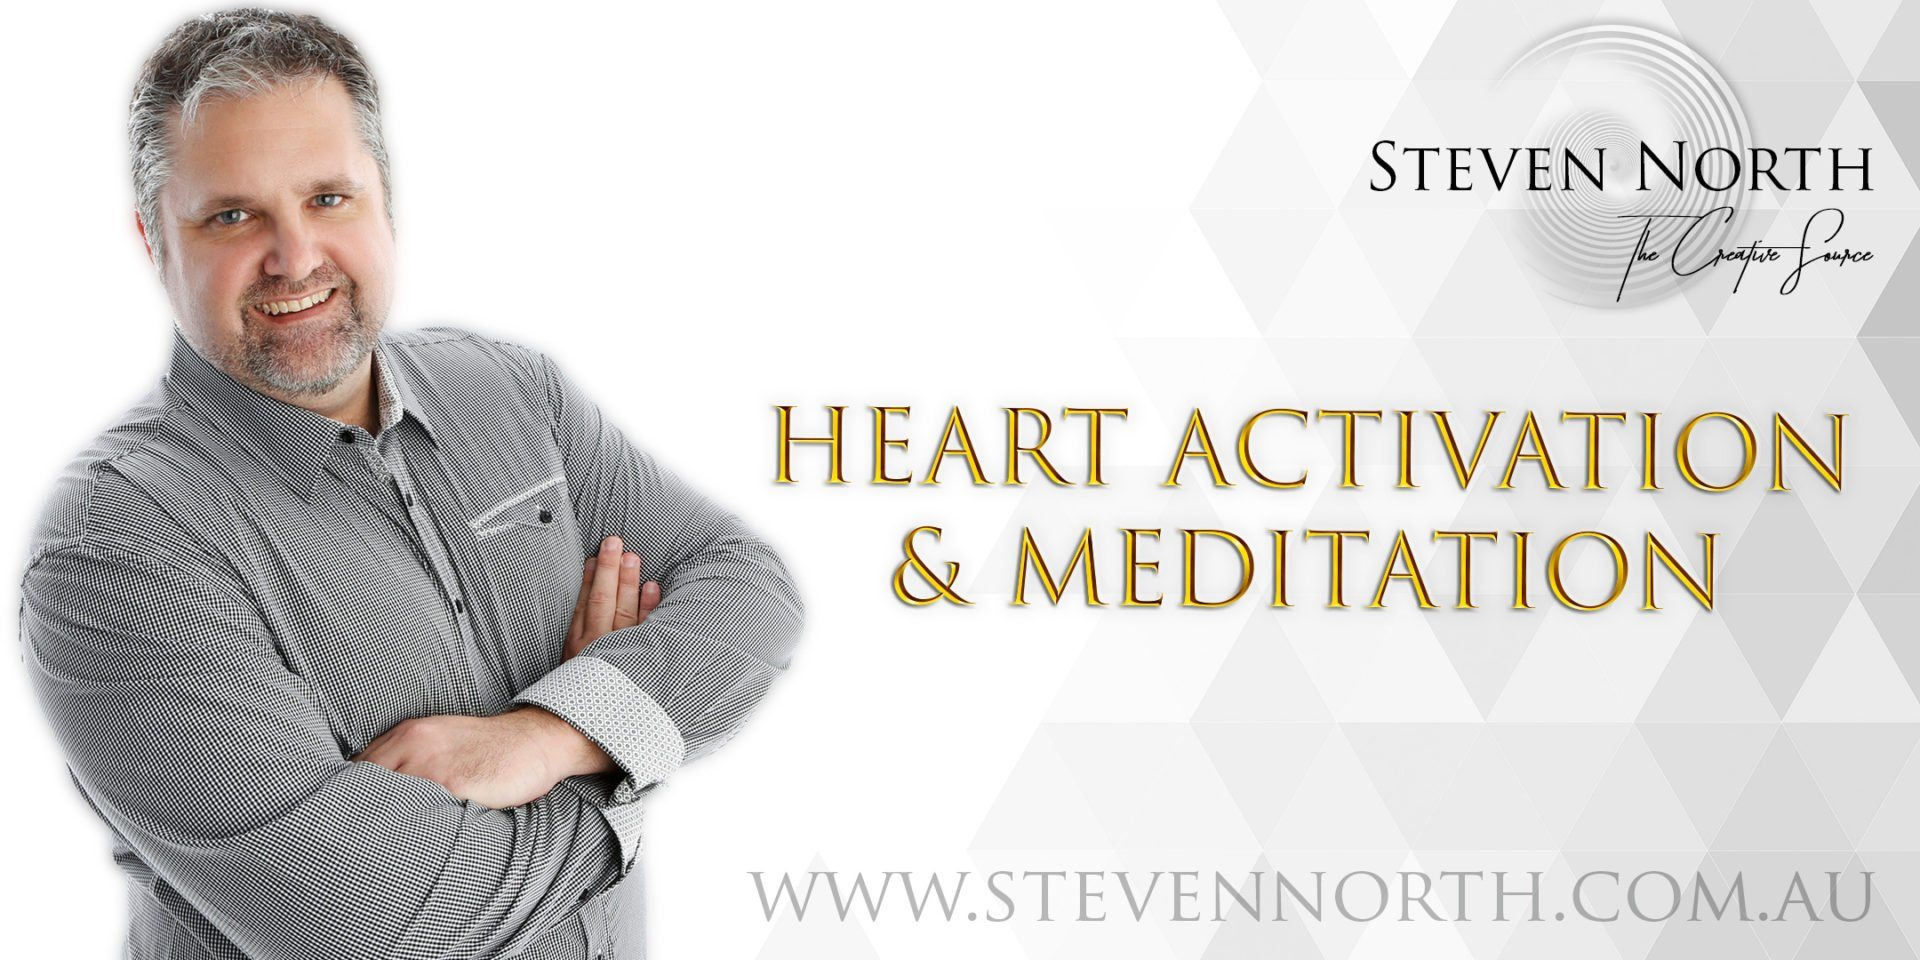 Heart Activation & Meditation Session Online with Steven North